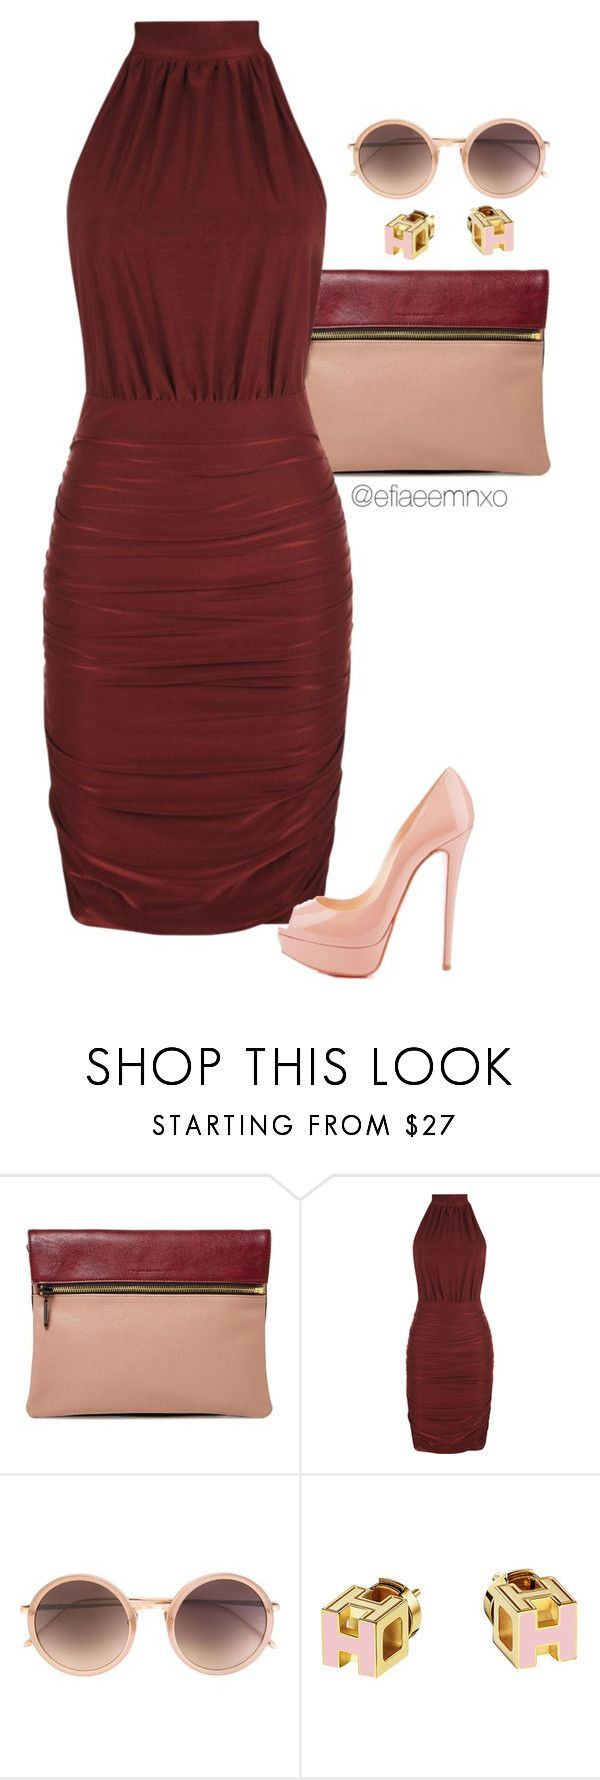 """""""Marsala x Blush"""" by efiaeemnxo ❤ liked on Polyvore featuring French Connection, WearAll, Christian Louboutin and Linda Farrow"""